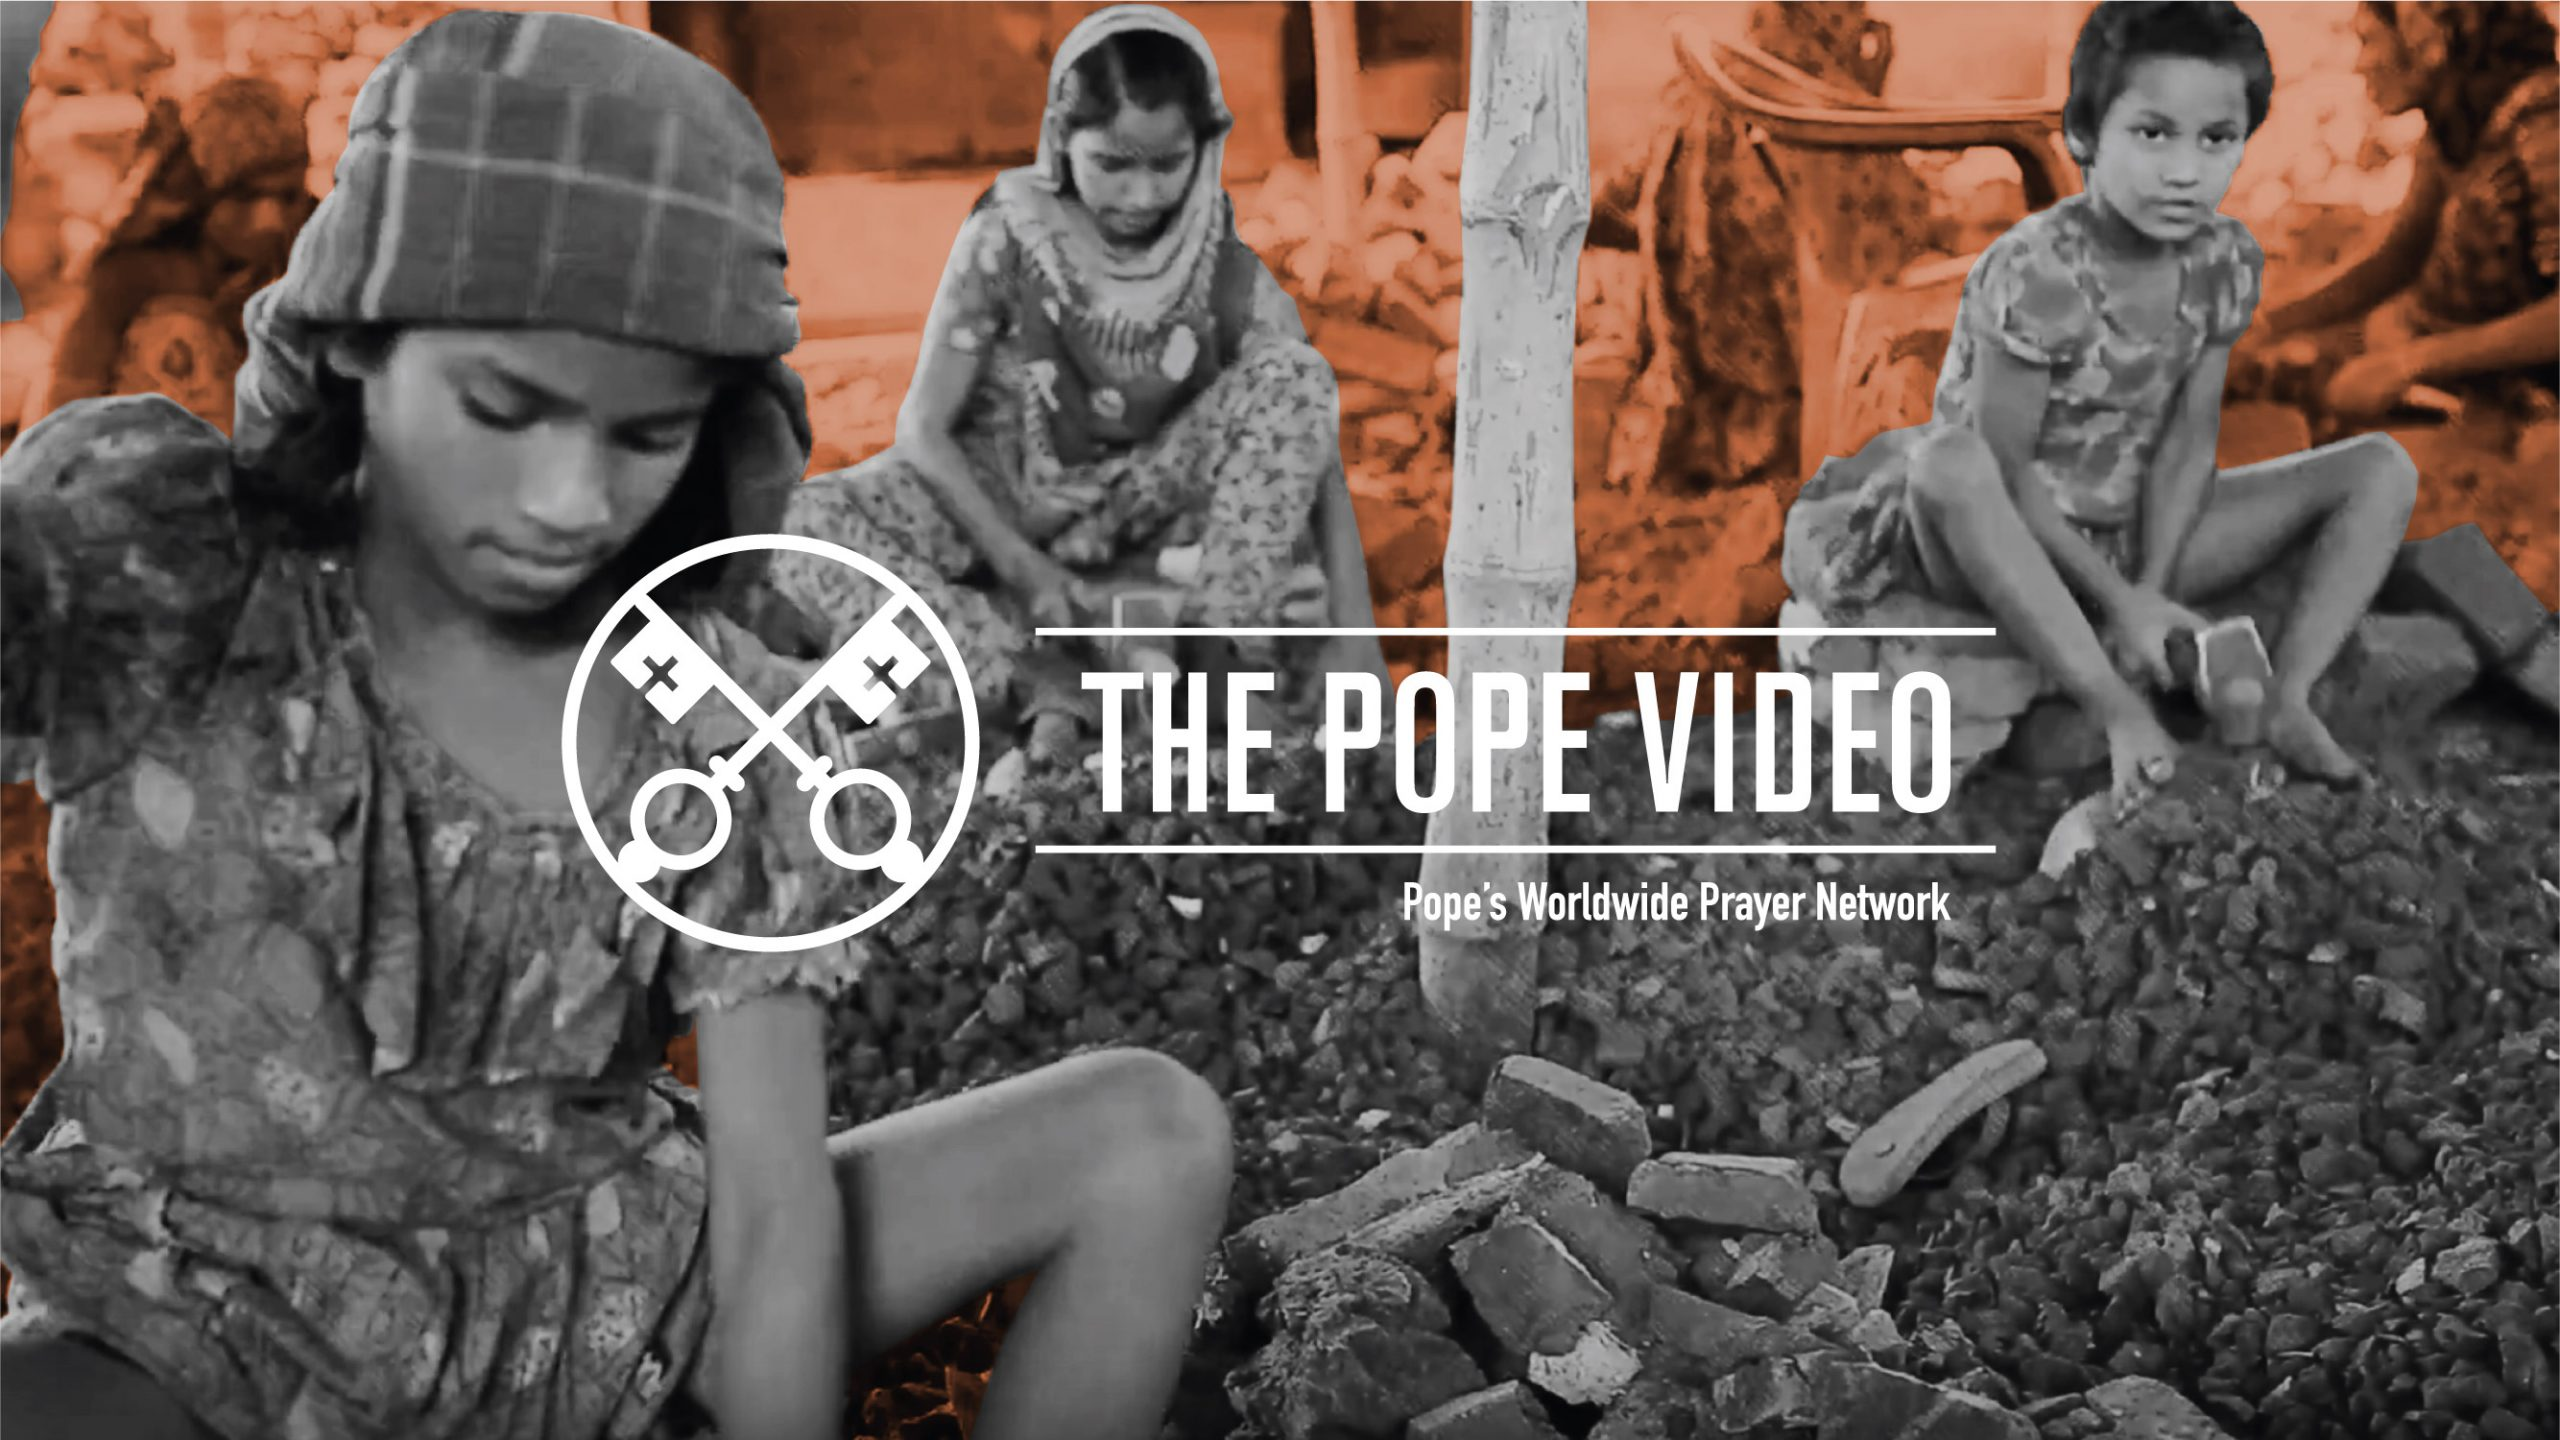 The Pope Video against Human Trafficking